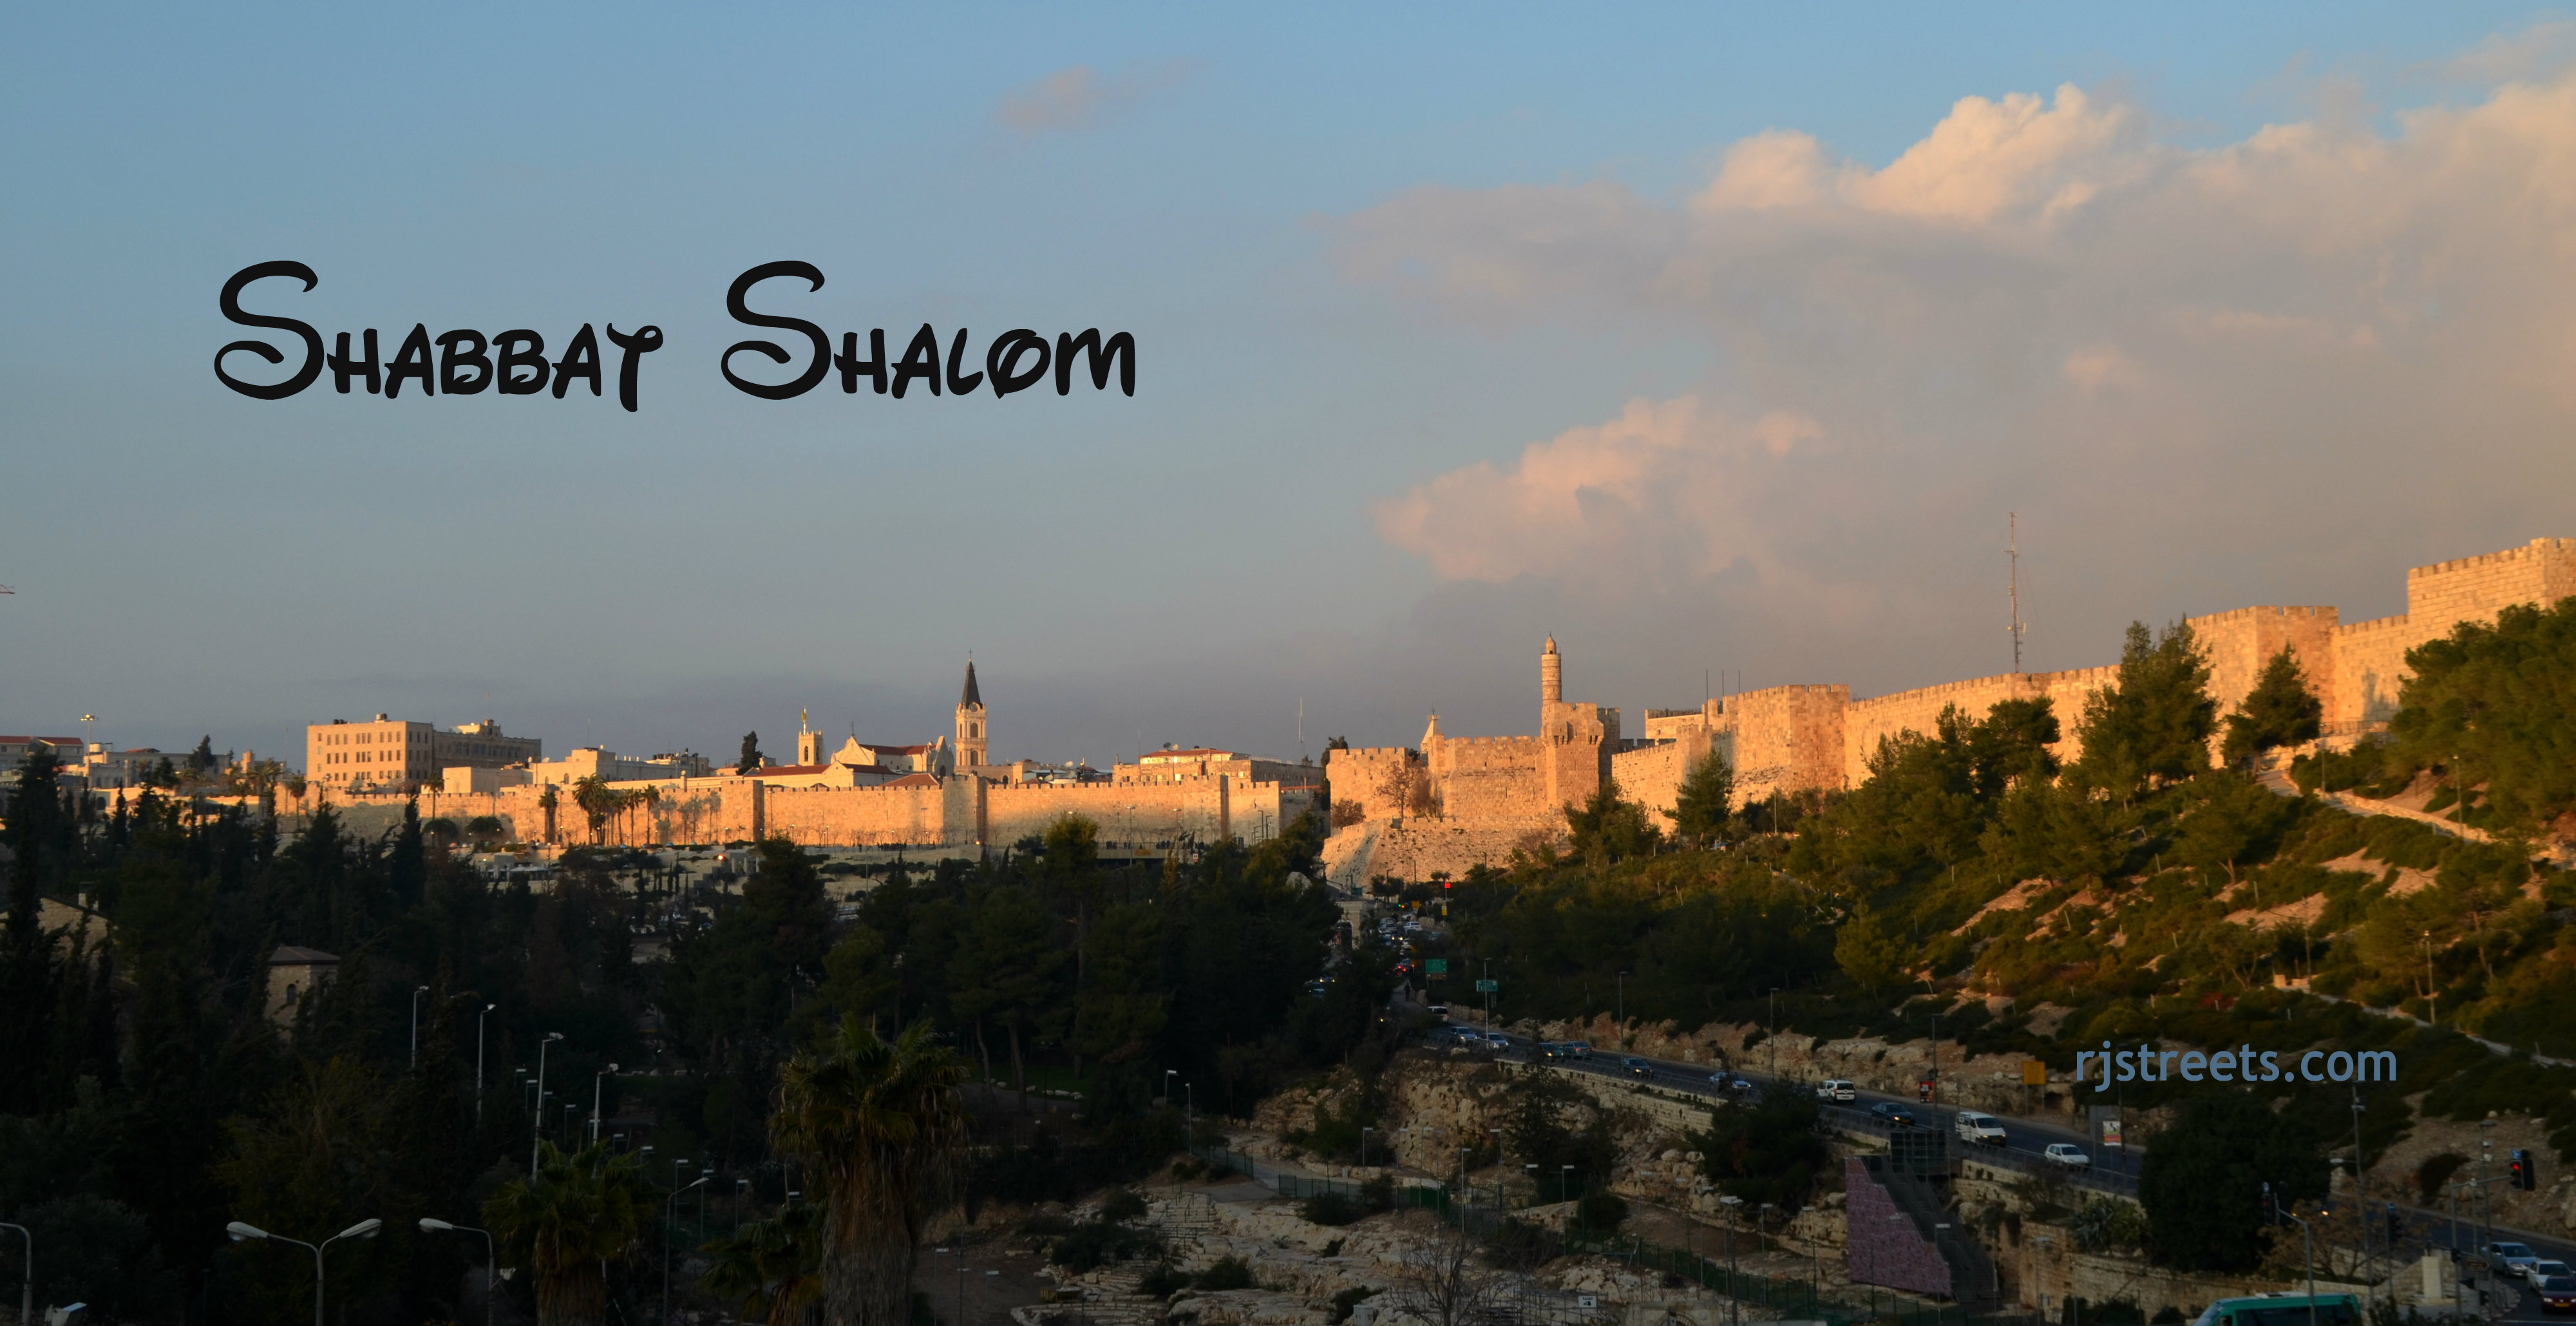 image Shabat shalom, photo Old City Walls, Jerusalem photo